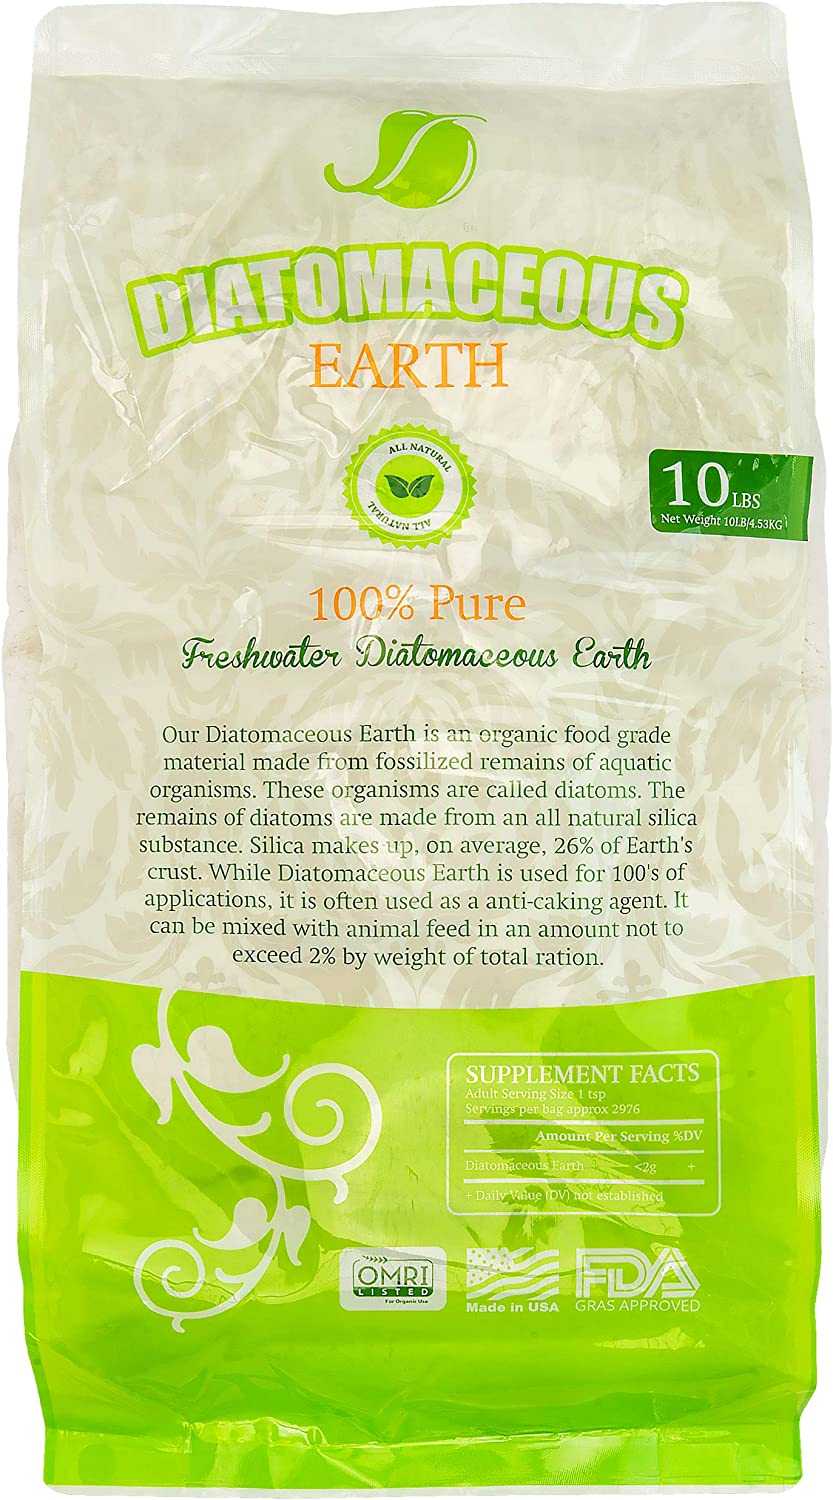 Absorbent Industries AI-10066 Diatomaceous Earth Food Grade, 10 lb, Wh, White